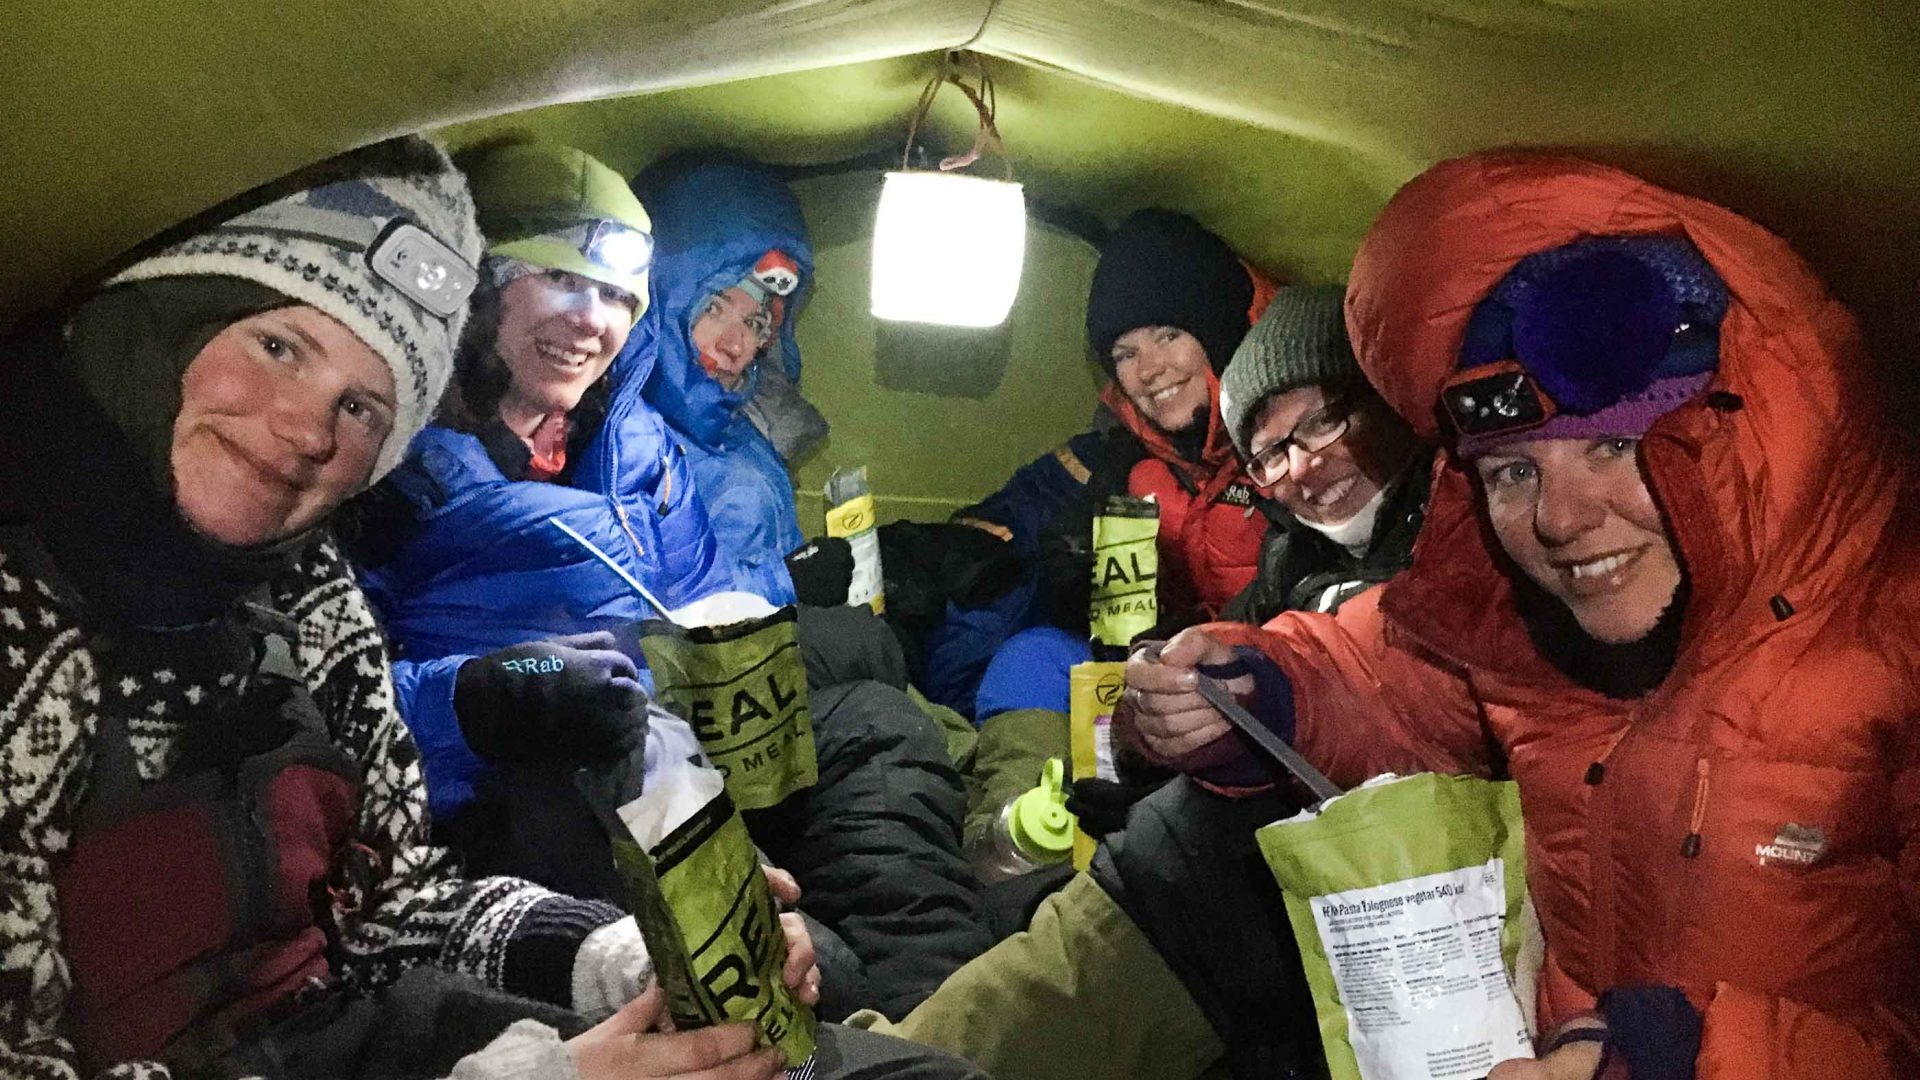 Friends crammed together into a tent.